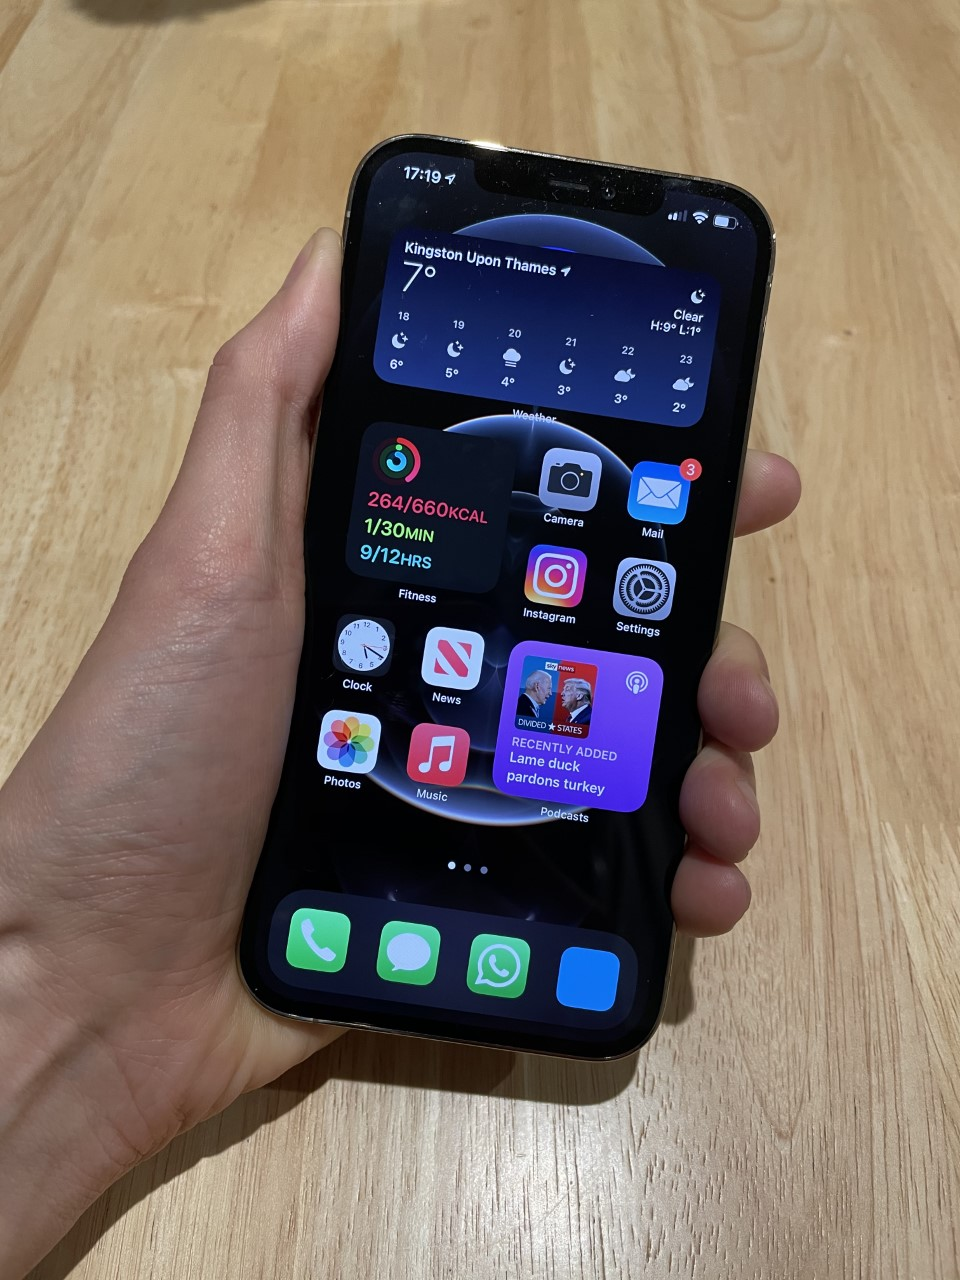 The iPhone 12 Pro Max